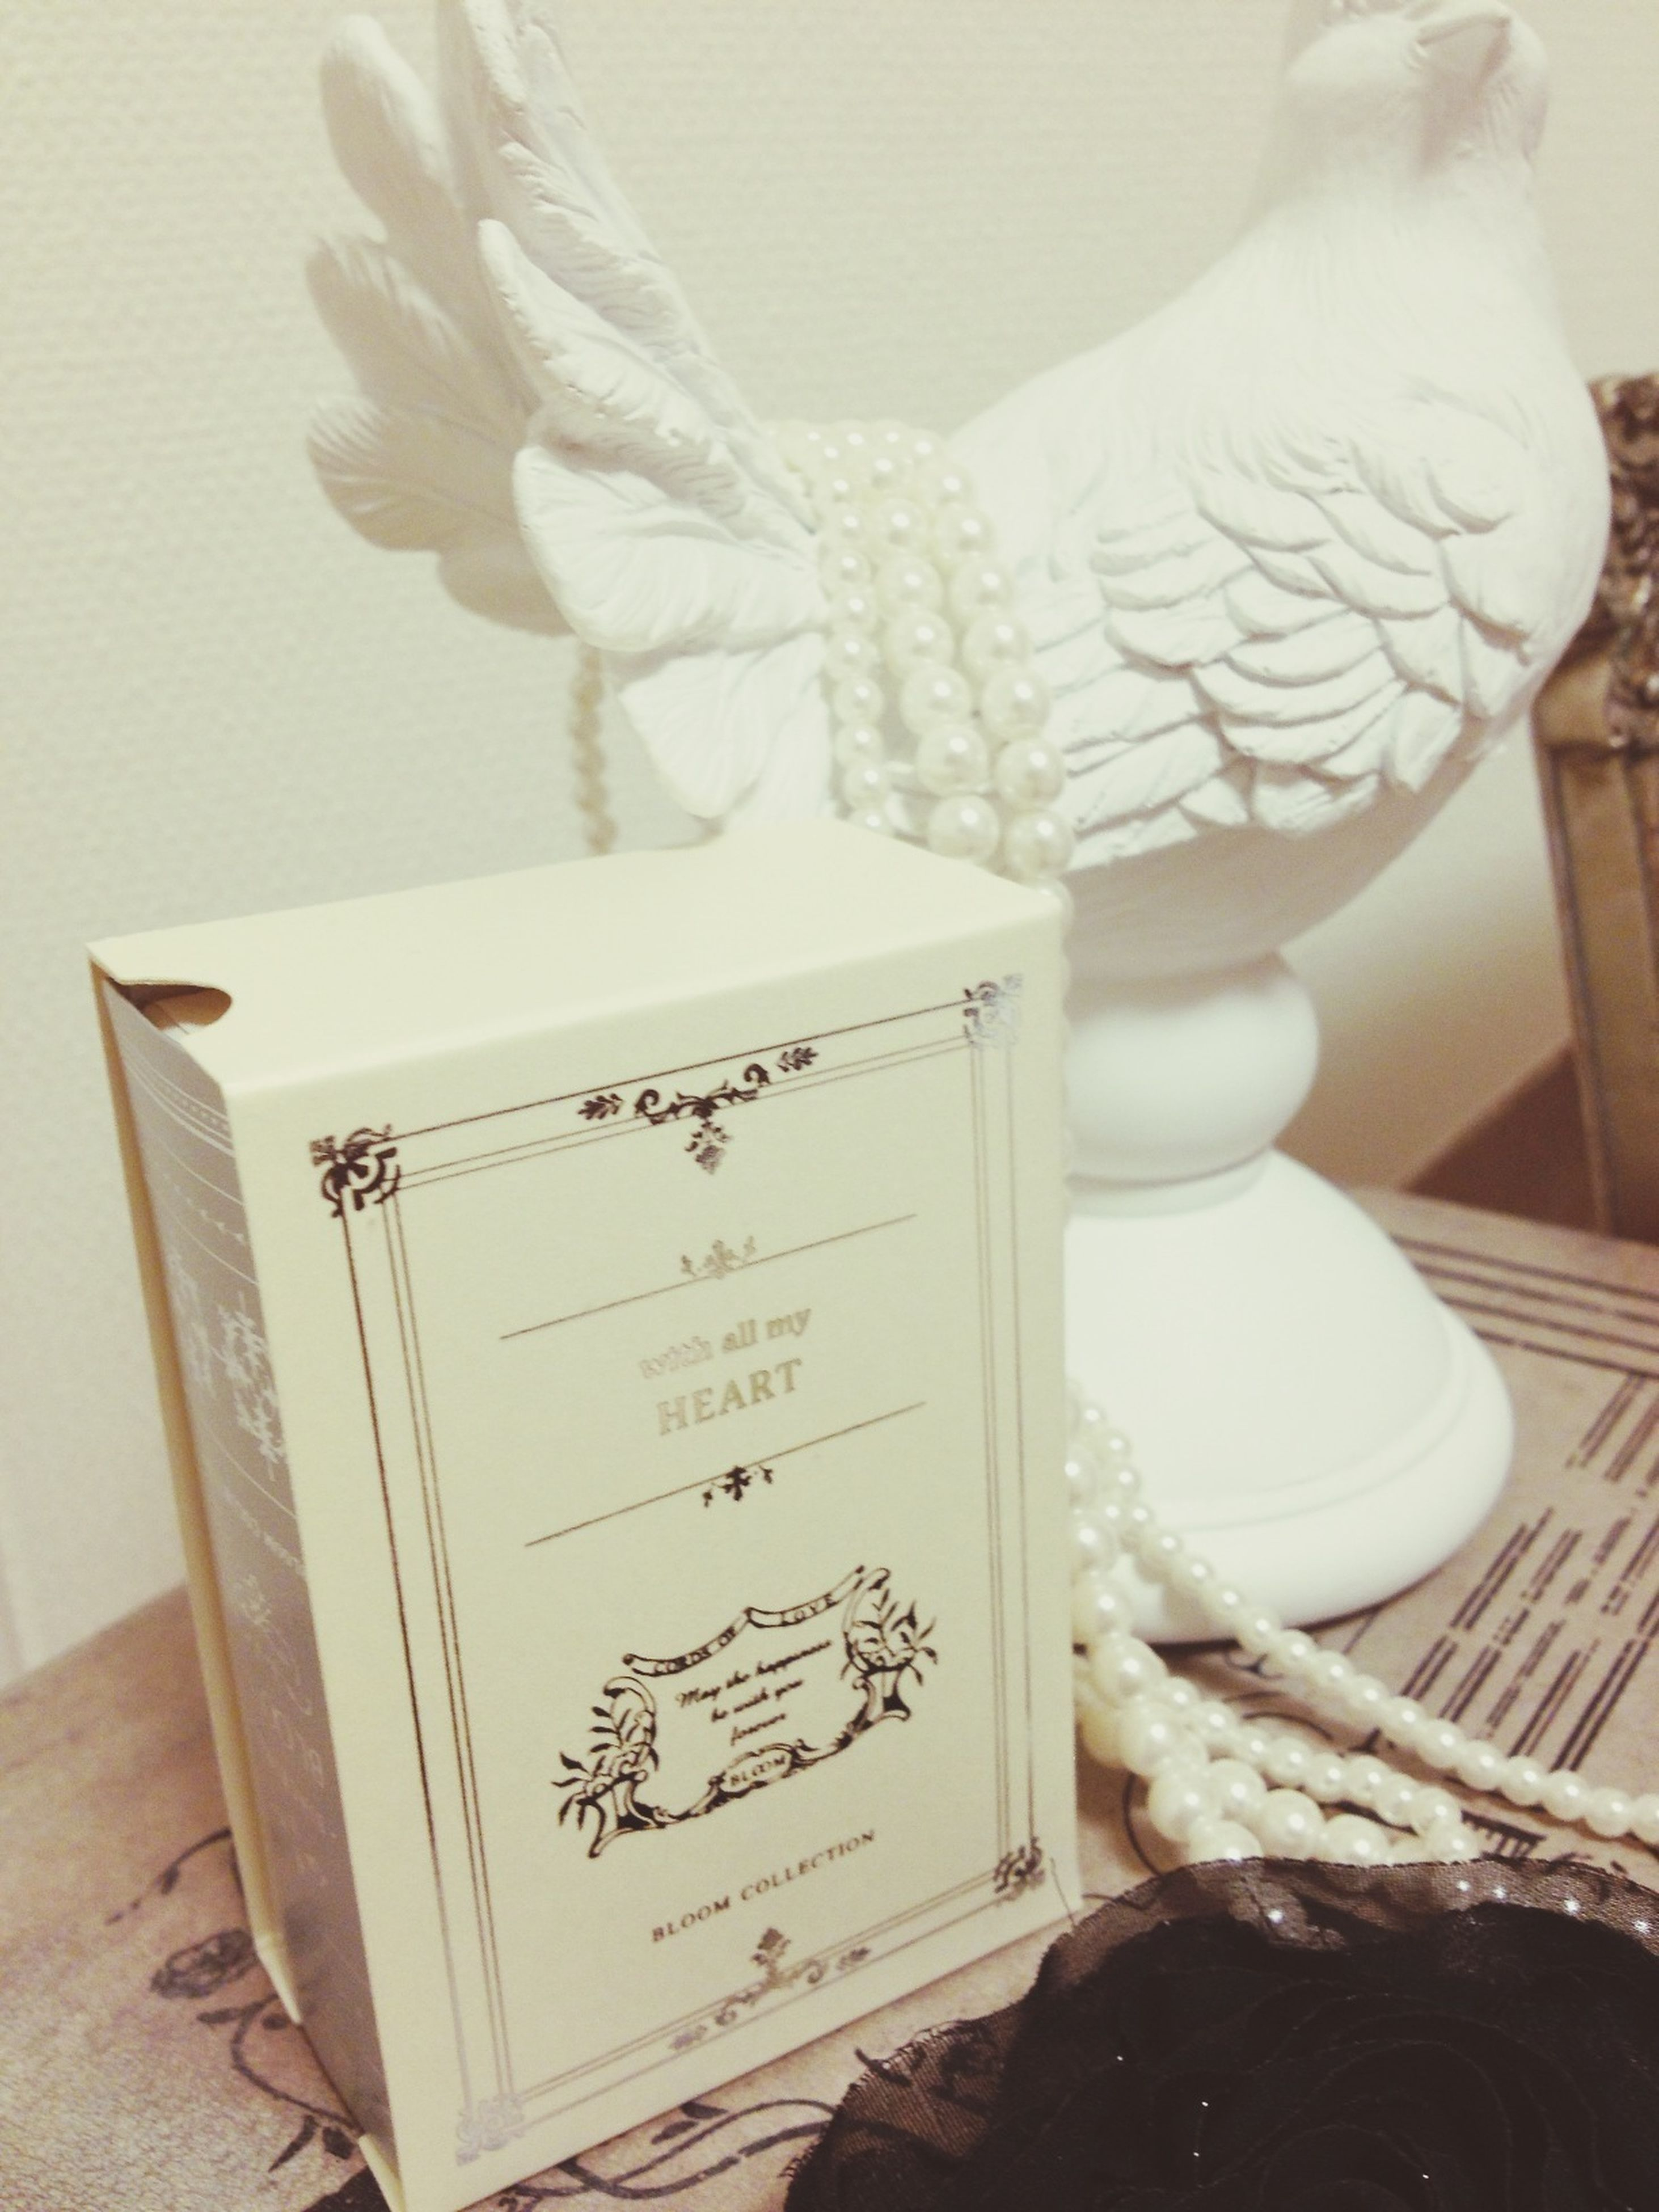 indoors, text, western script, communication, table, art and craft, art, creativity, book, human representation, paper, still life, close-up, home interior, animal representation, white color, non-western script, wall - building feature, wood - material, no people